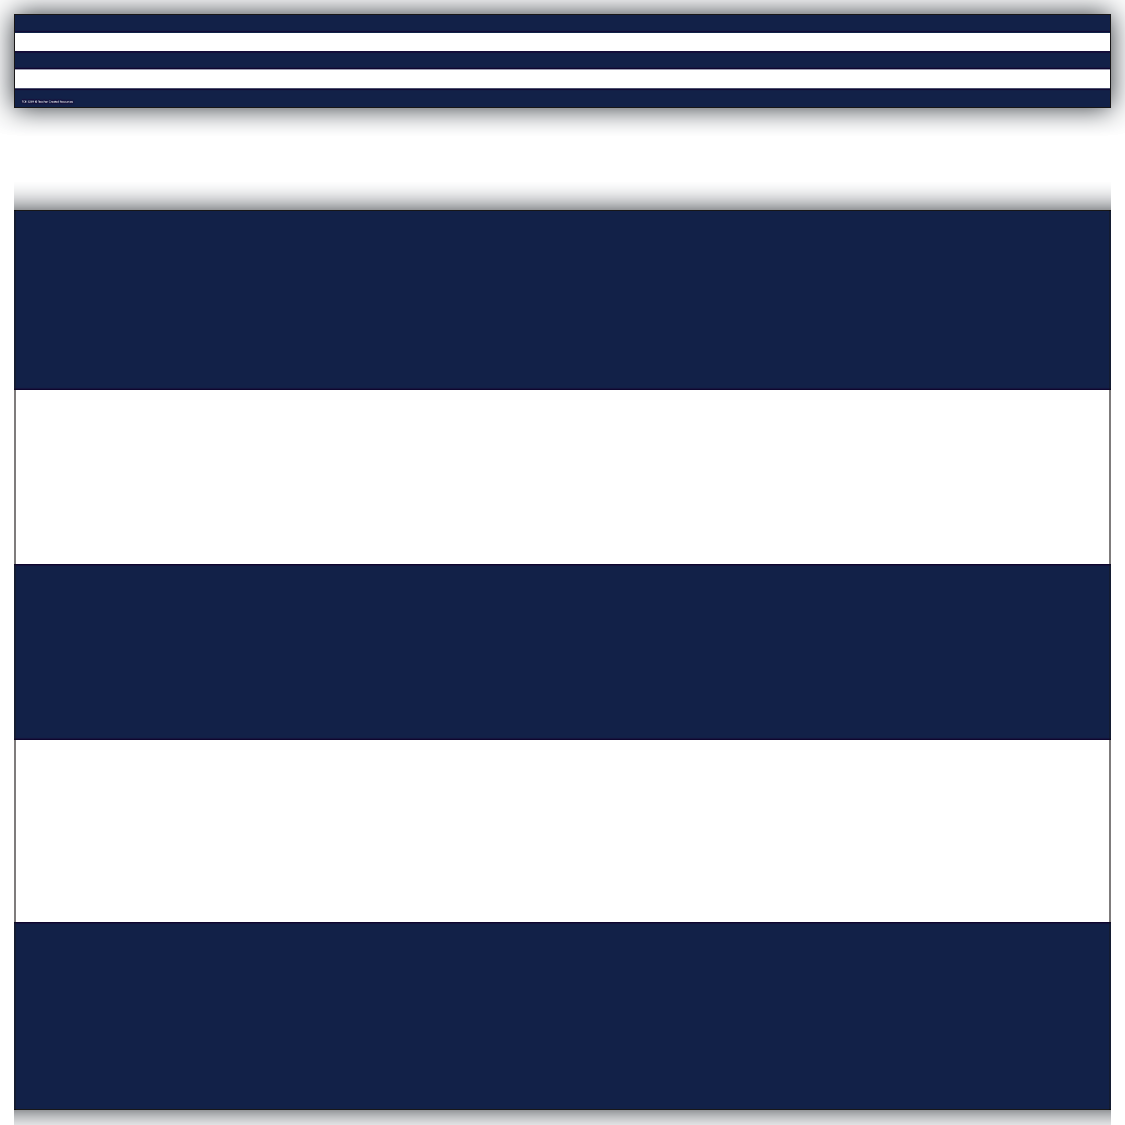 Navy Blue & White Stripes Straight Border Trim